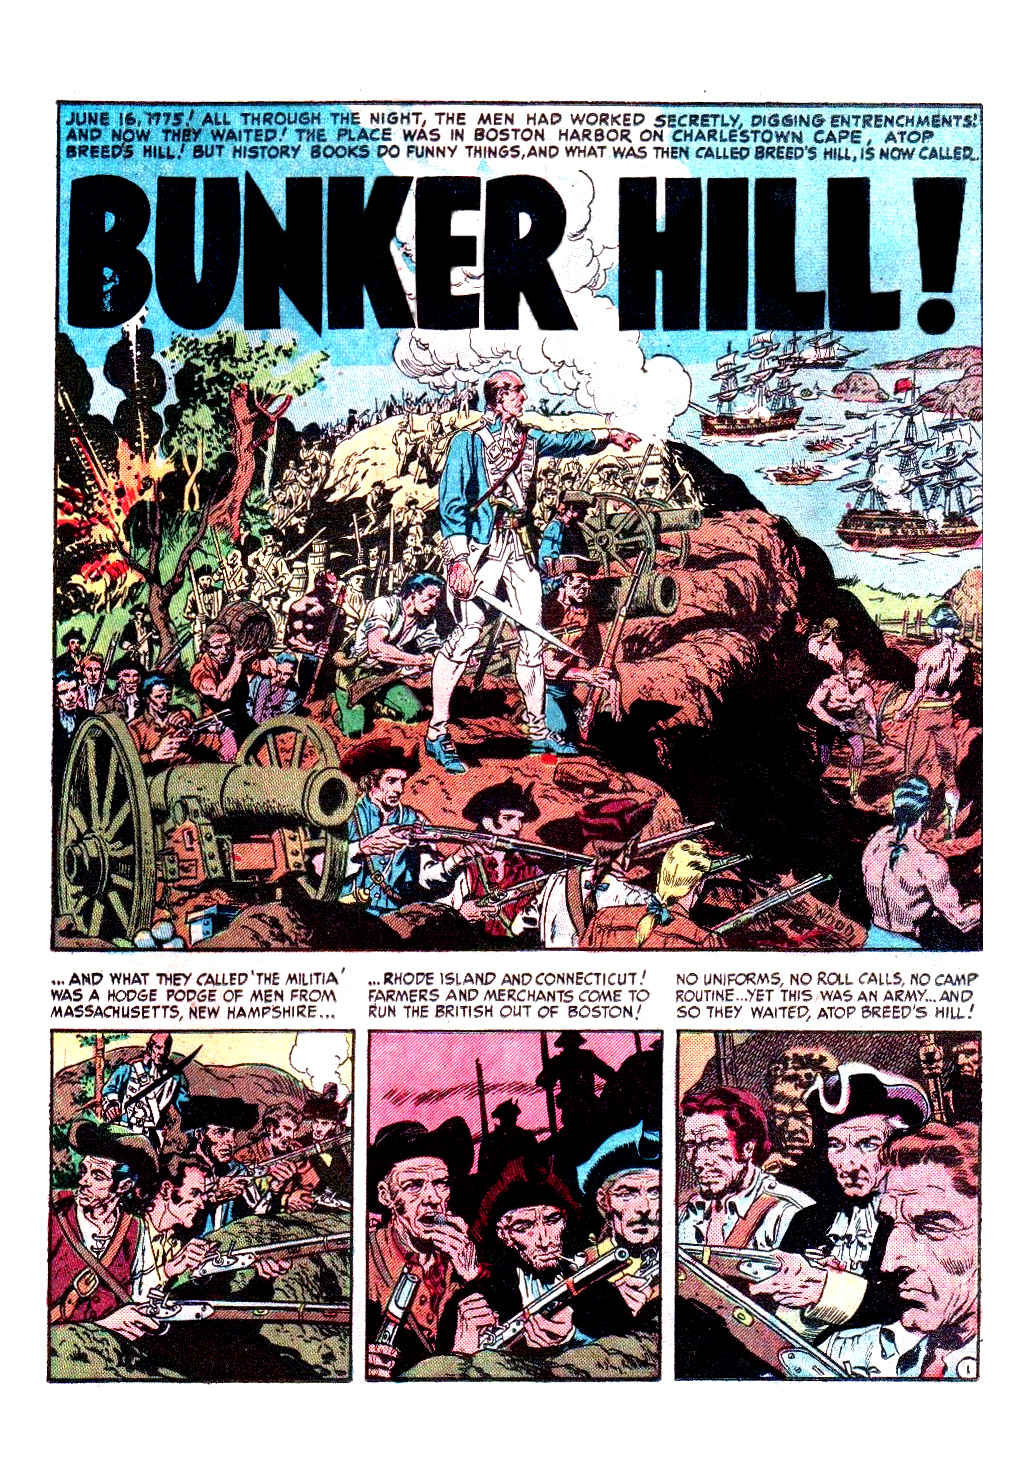 Bunker Hill from Two-Fisted Tales #25 1952